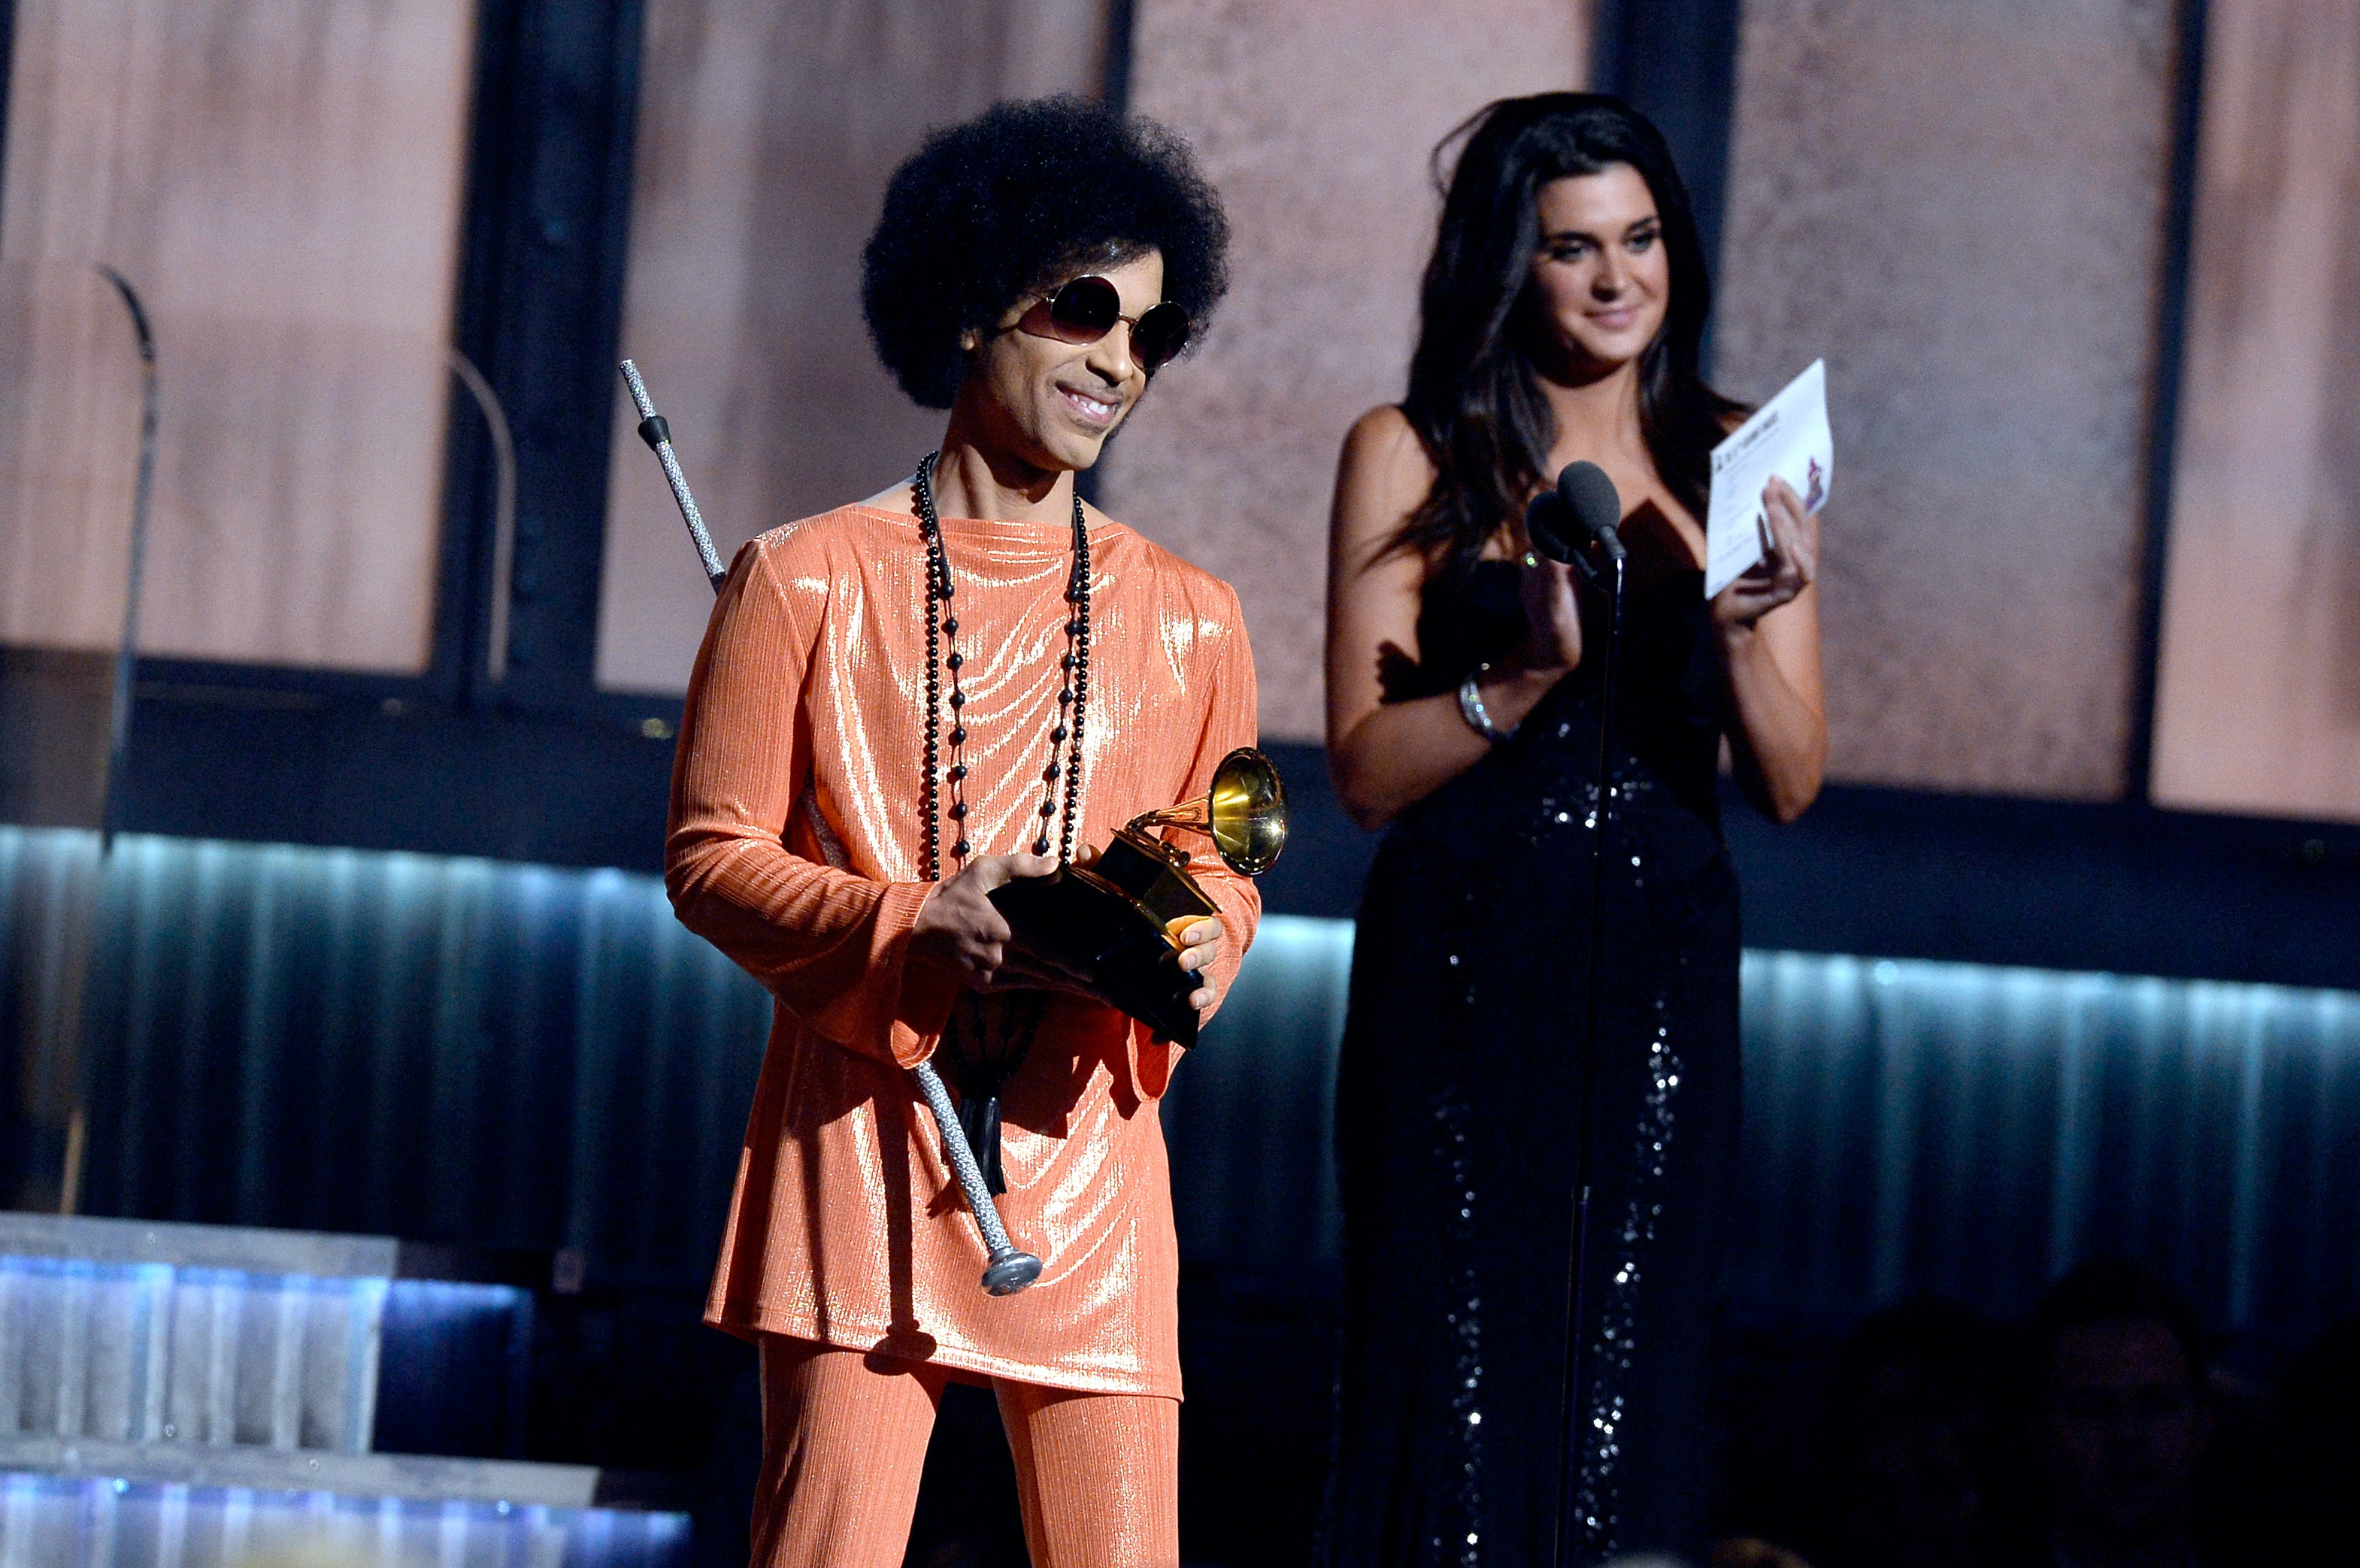 Bruno Mars, The Time Blew Everyone Away With Grammys Prince Tribute